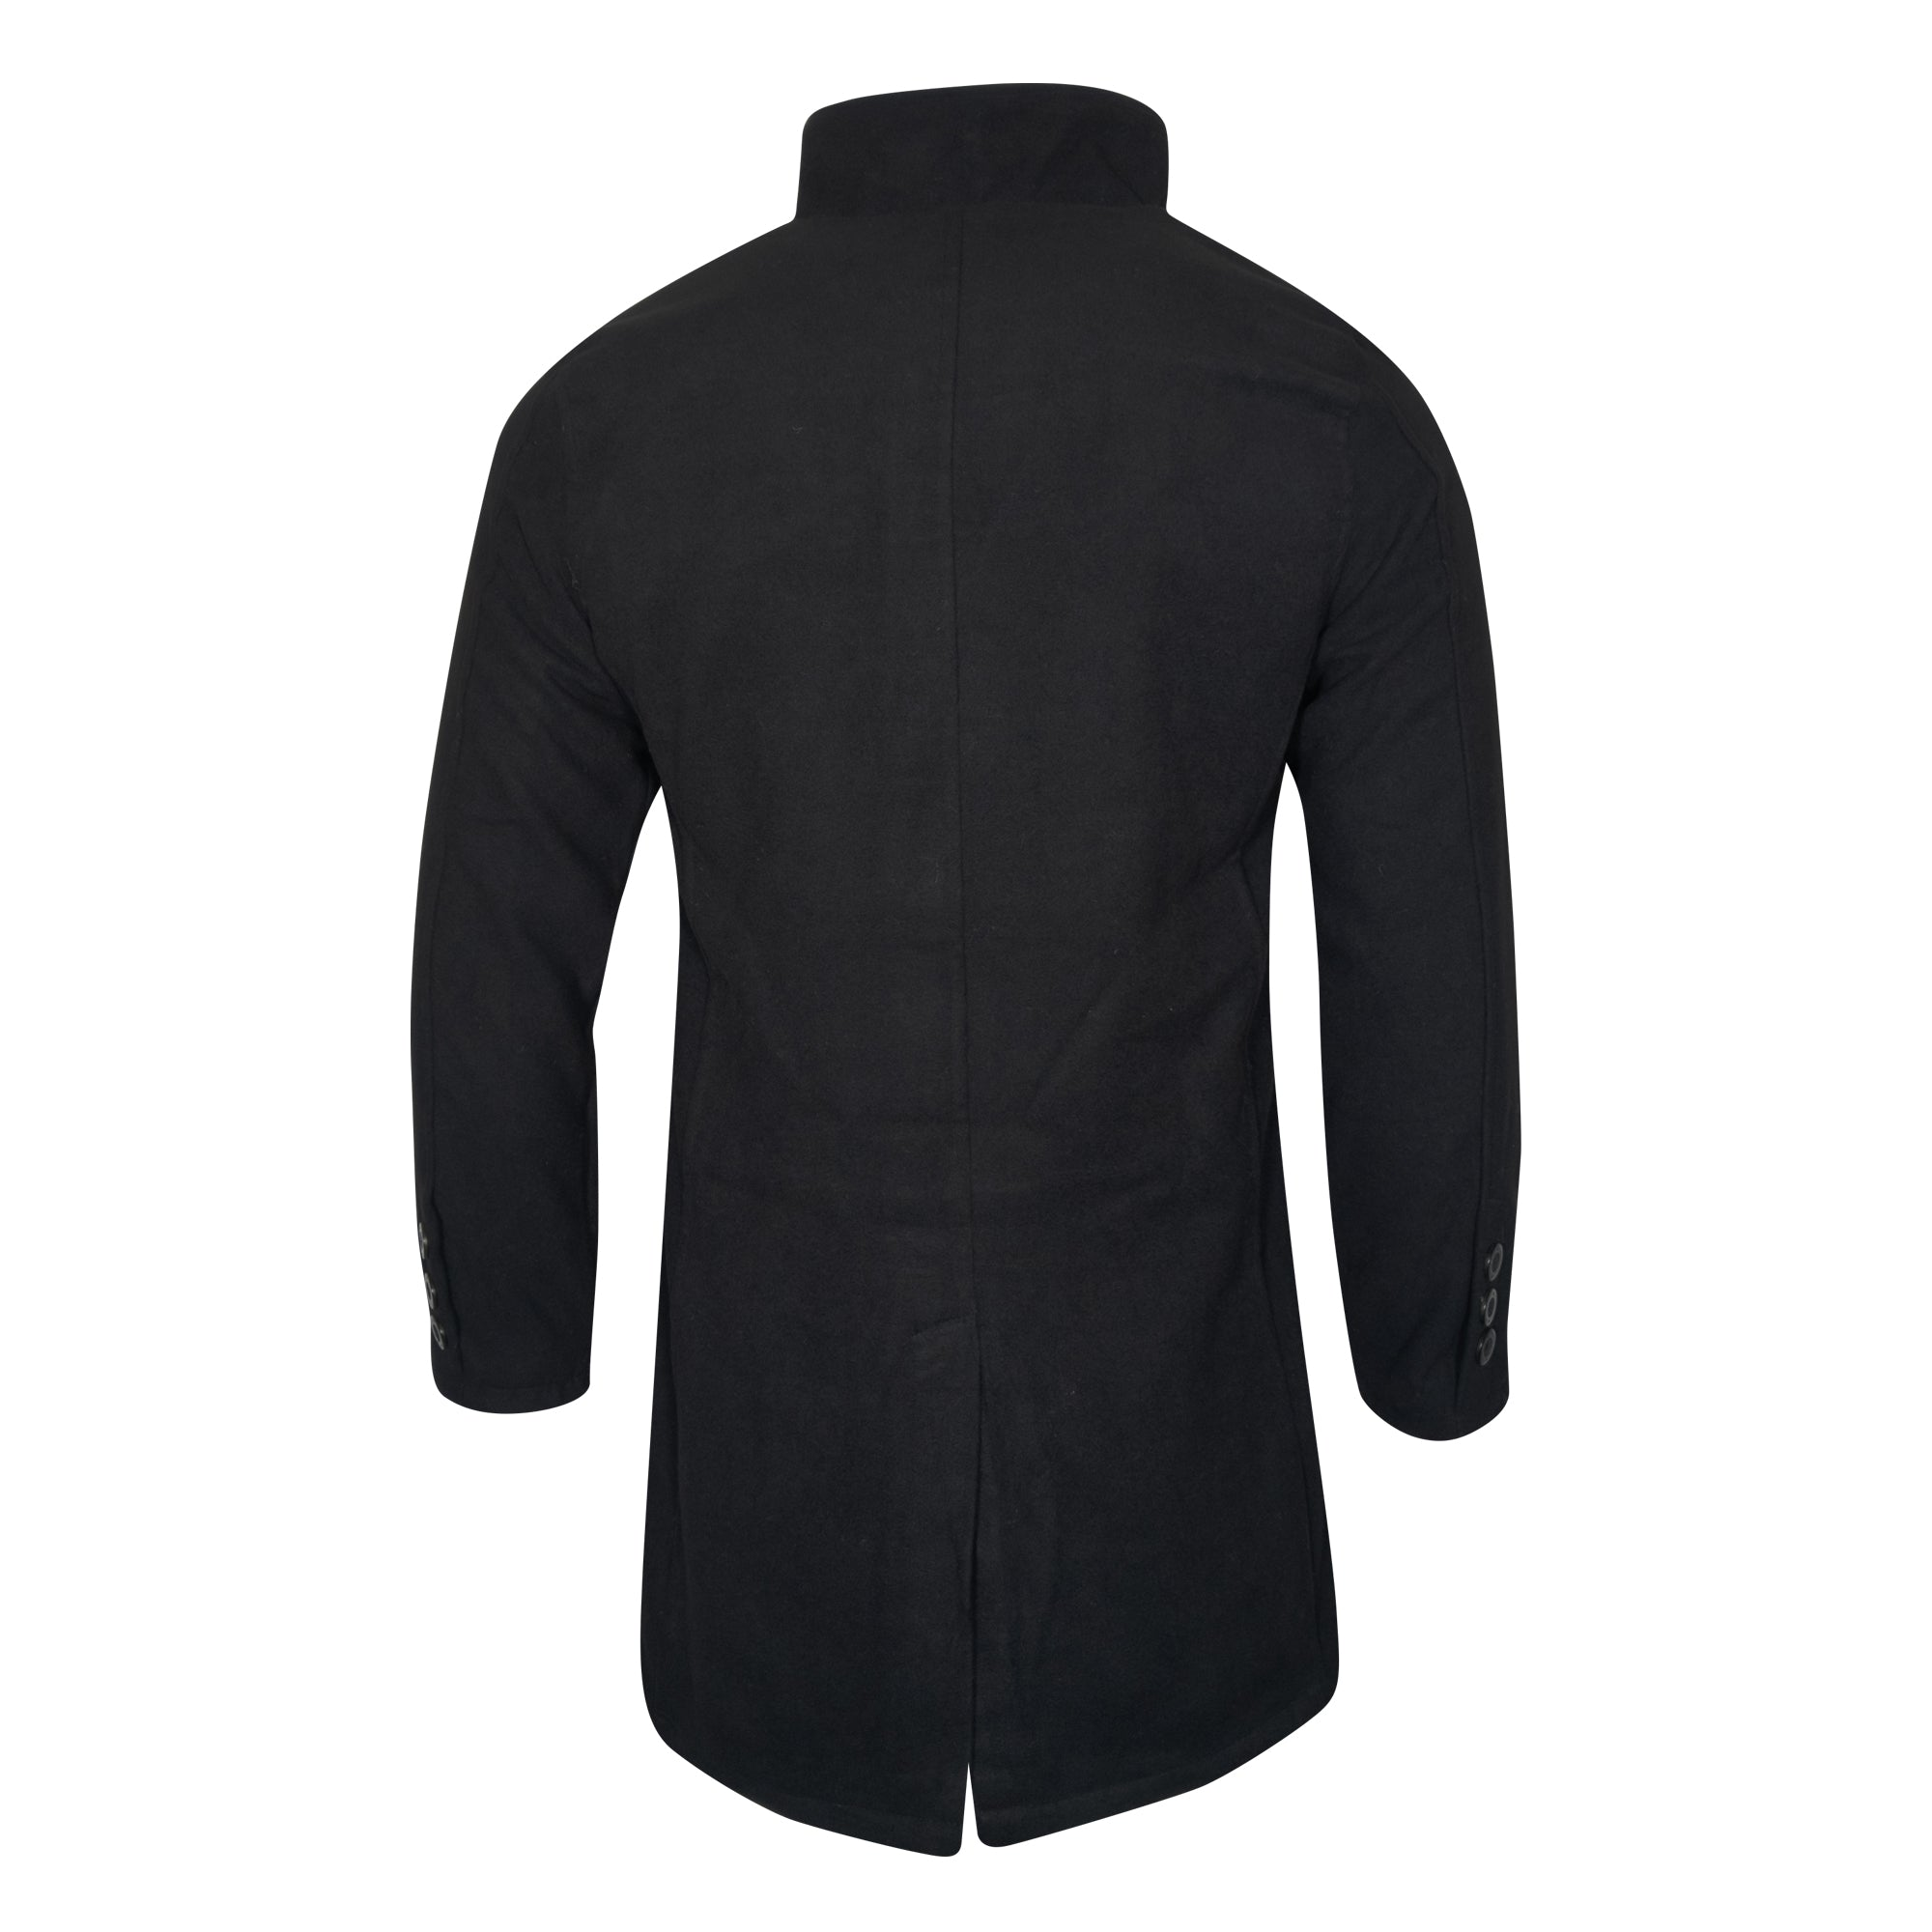 NFFC Mens Black Wool Coat